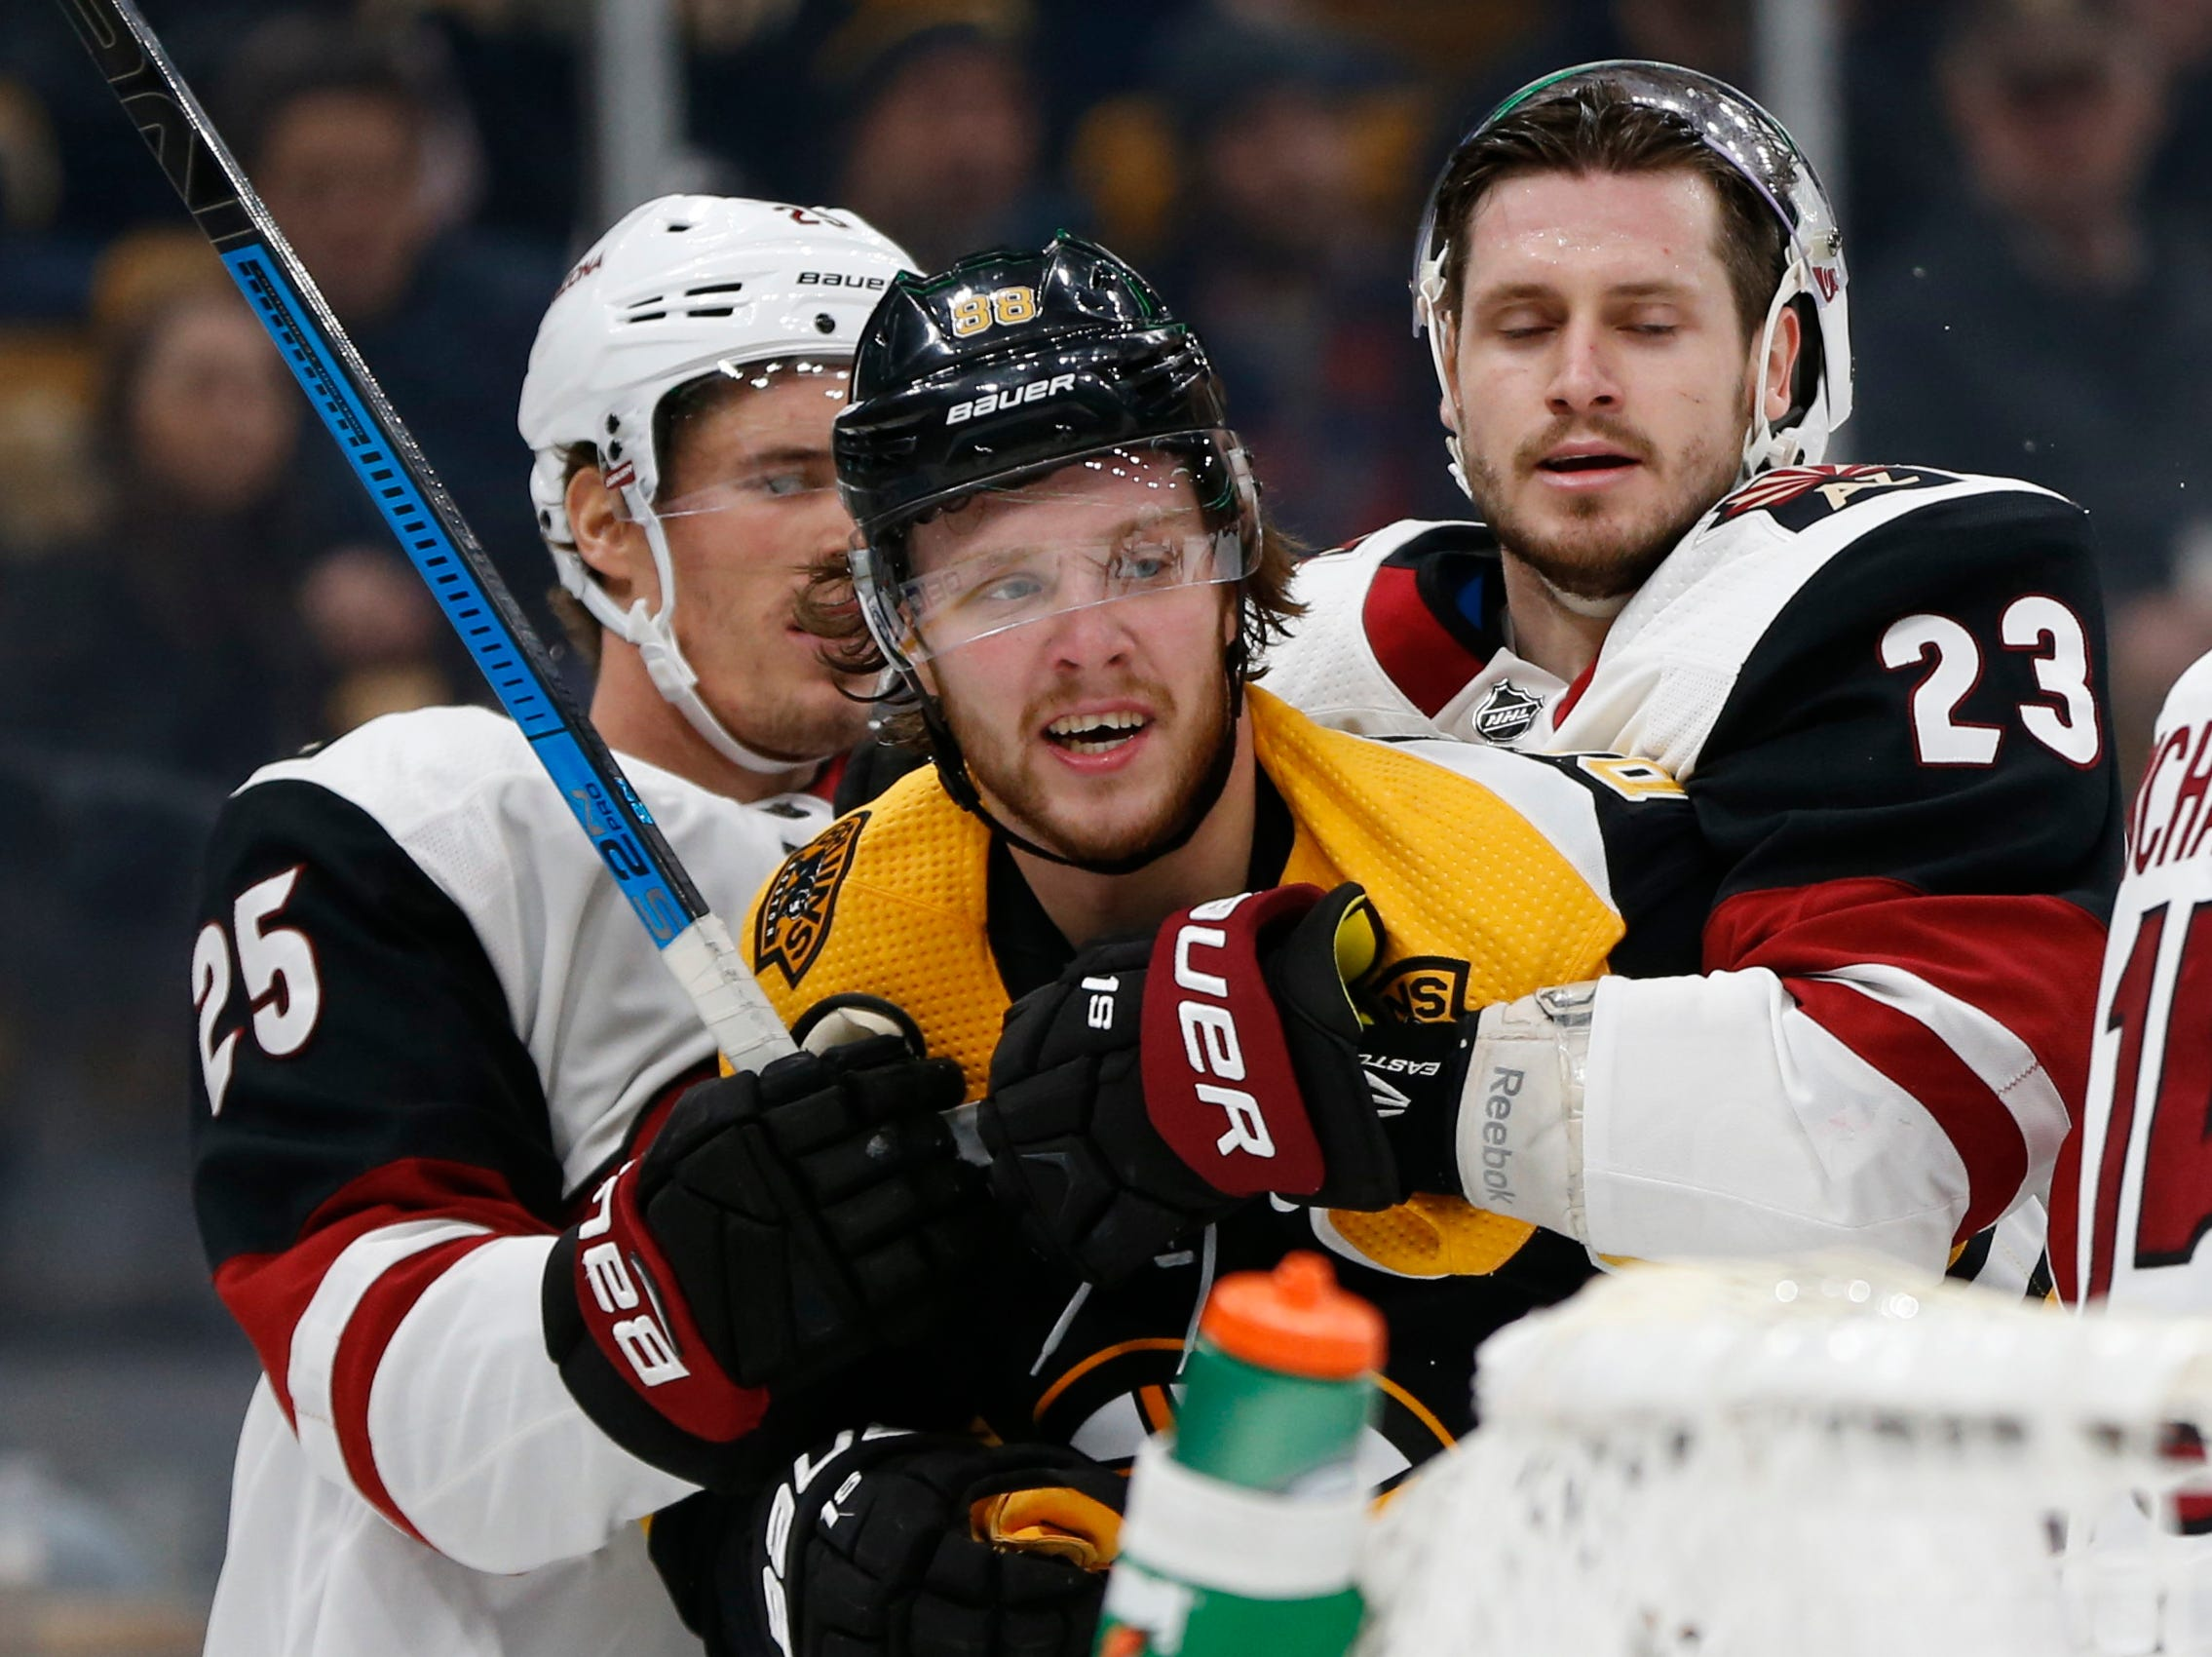 Dec 11, 2018; Boston, MA, USA; Arizona Coyotes center Nick Cousins (25) and defenseman Oliver Ekman-Larsson (23) restrain Boston Bruins right wing David Pastrnak (88) during the second period at TD Garden. Mandatory Credit: Greg M. Cooper-USA TODAY Sports